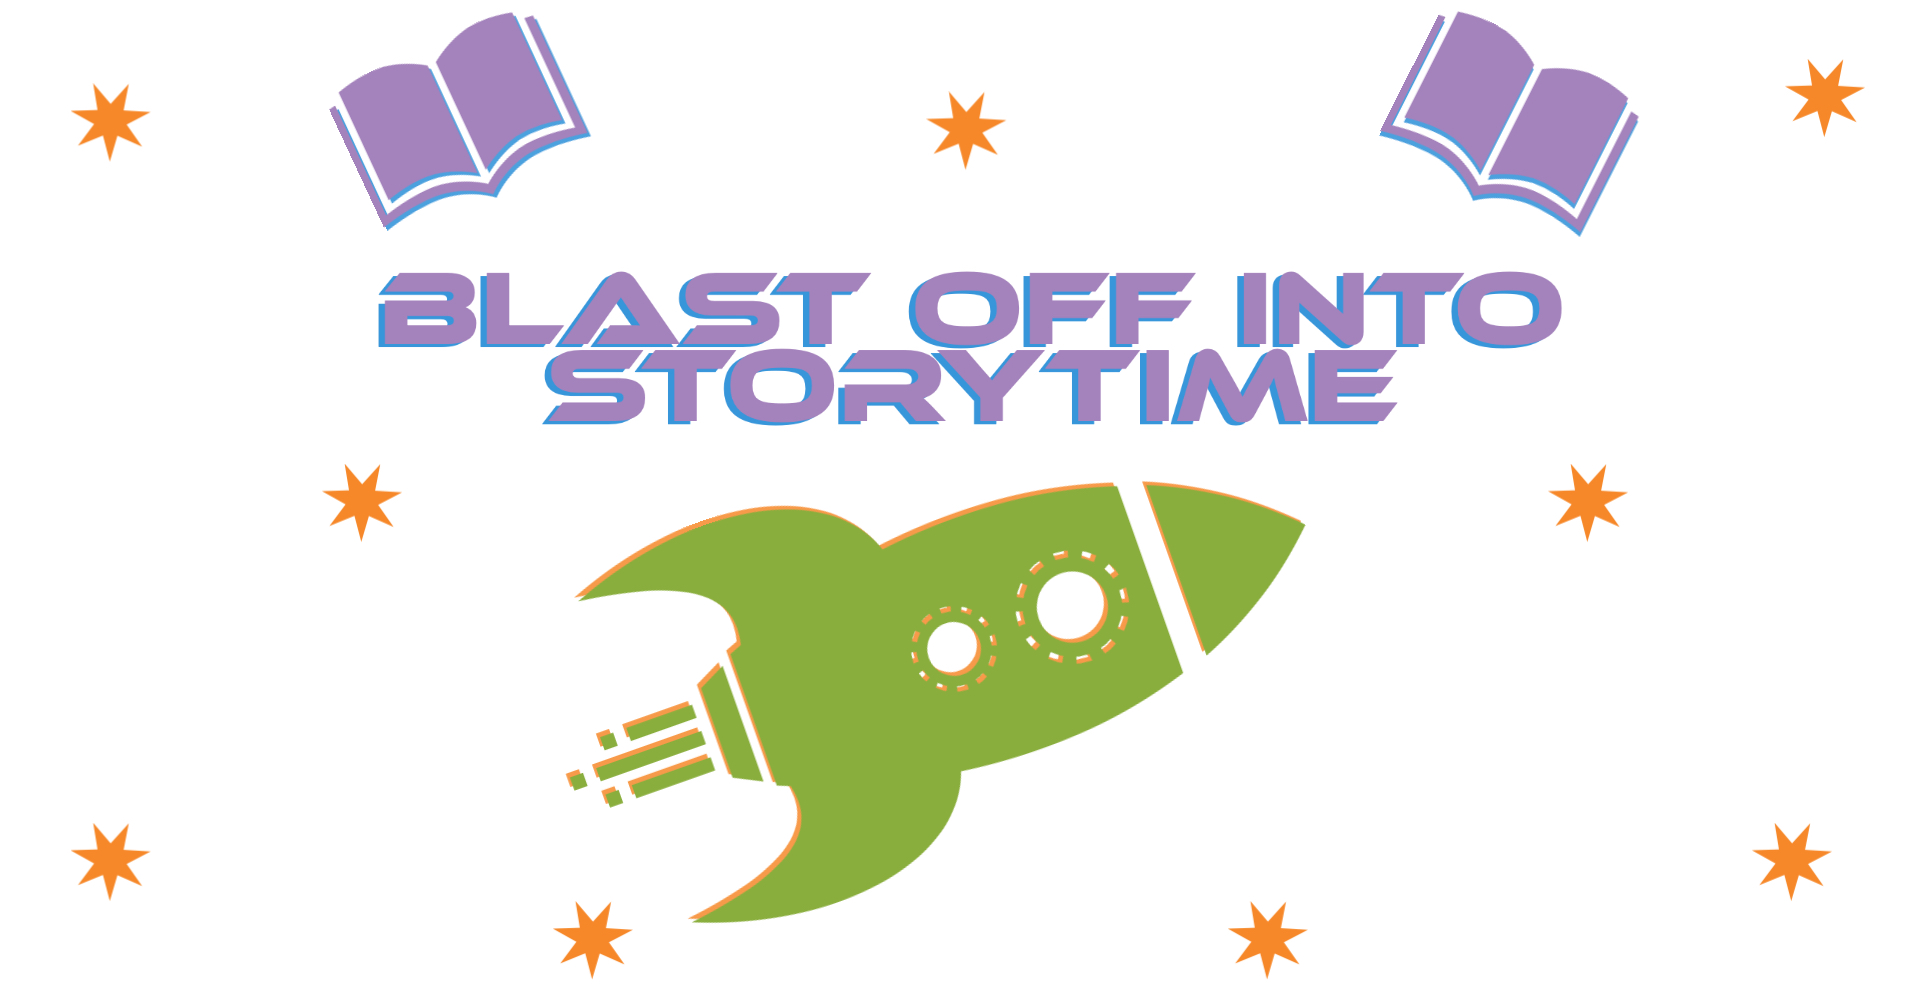 Blast off into Storytime